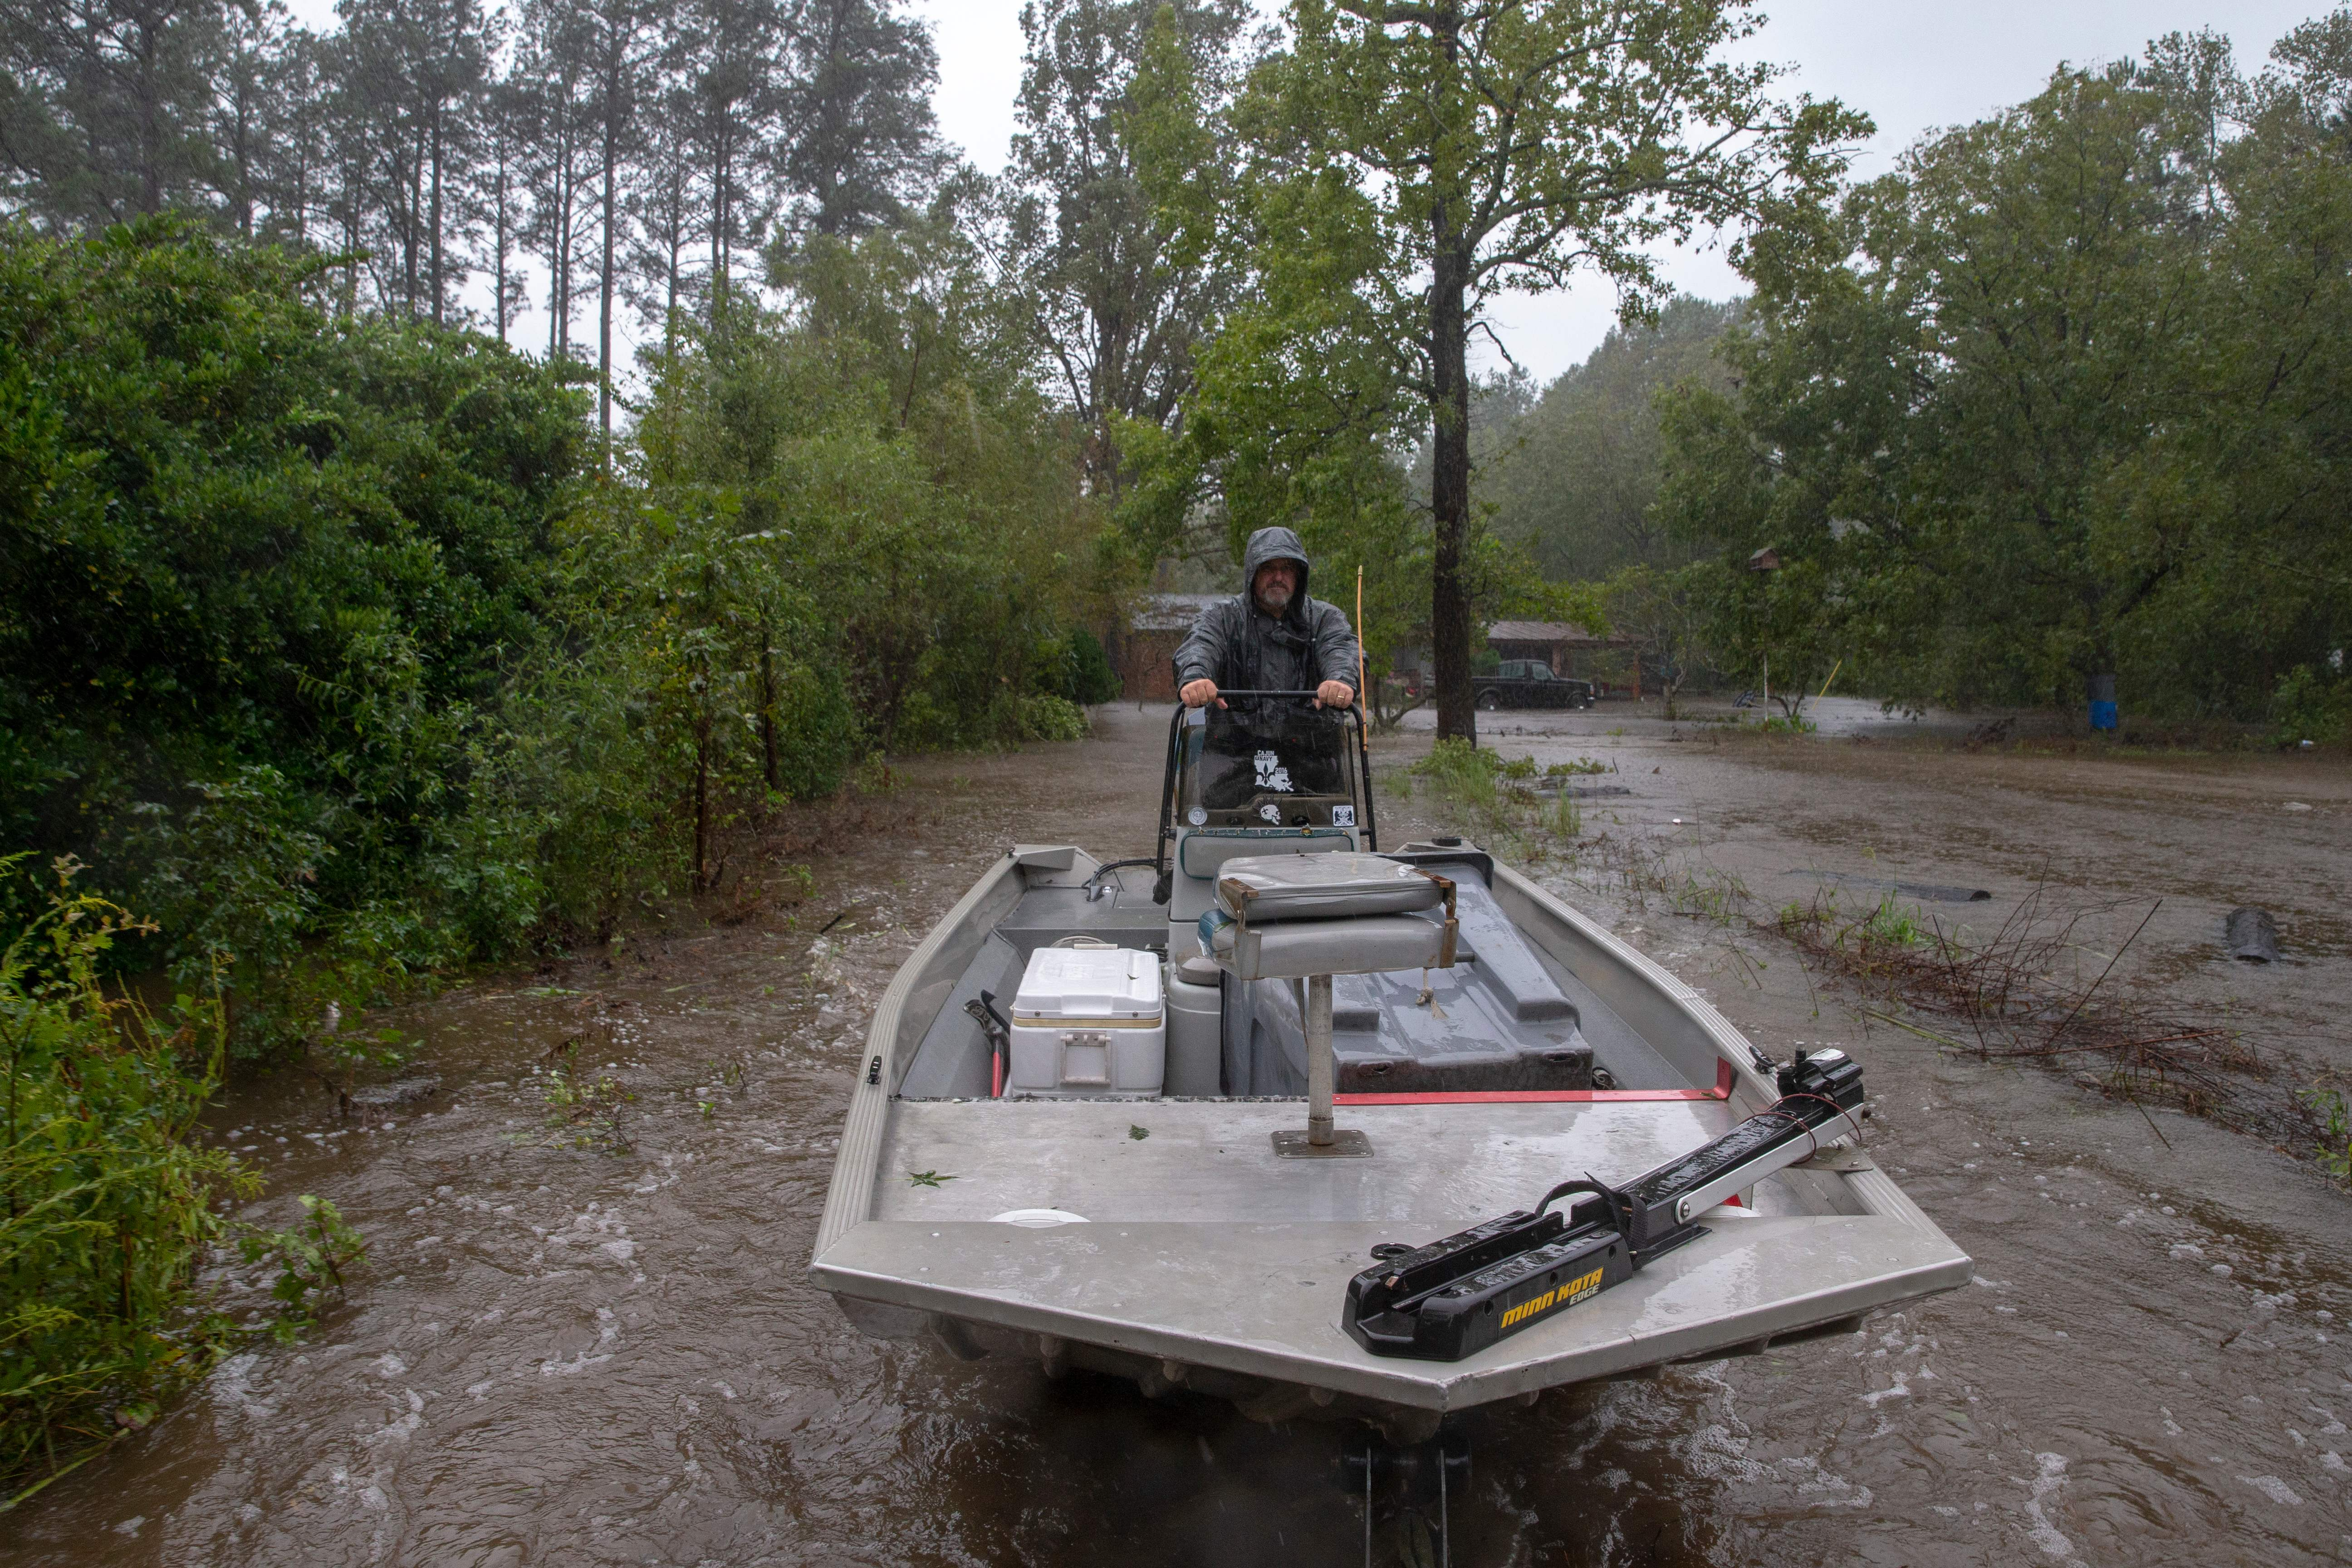 Rescuer John Bridges with the Cajun Navy rides a boat on a trailer after completing a rescue in Lumberton, North Carolina, in 2018 in the wake of Hurricane Florence.